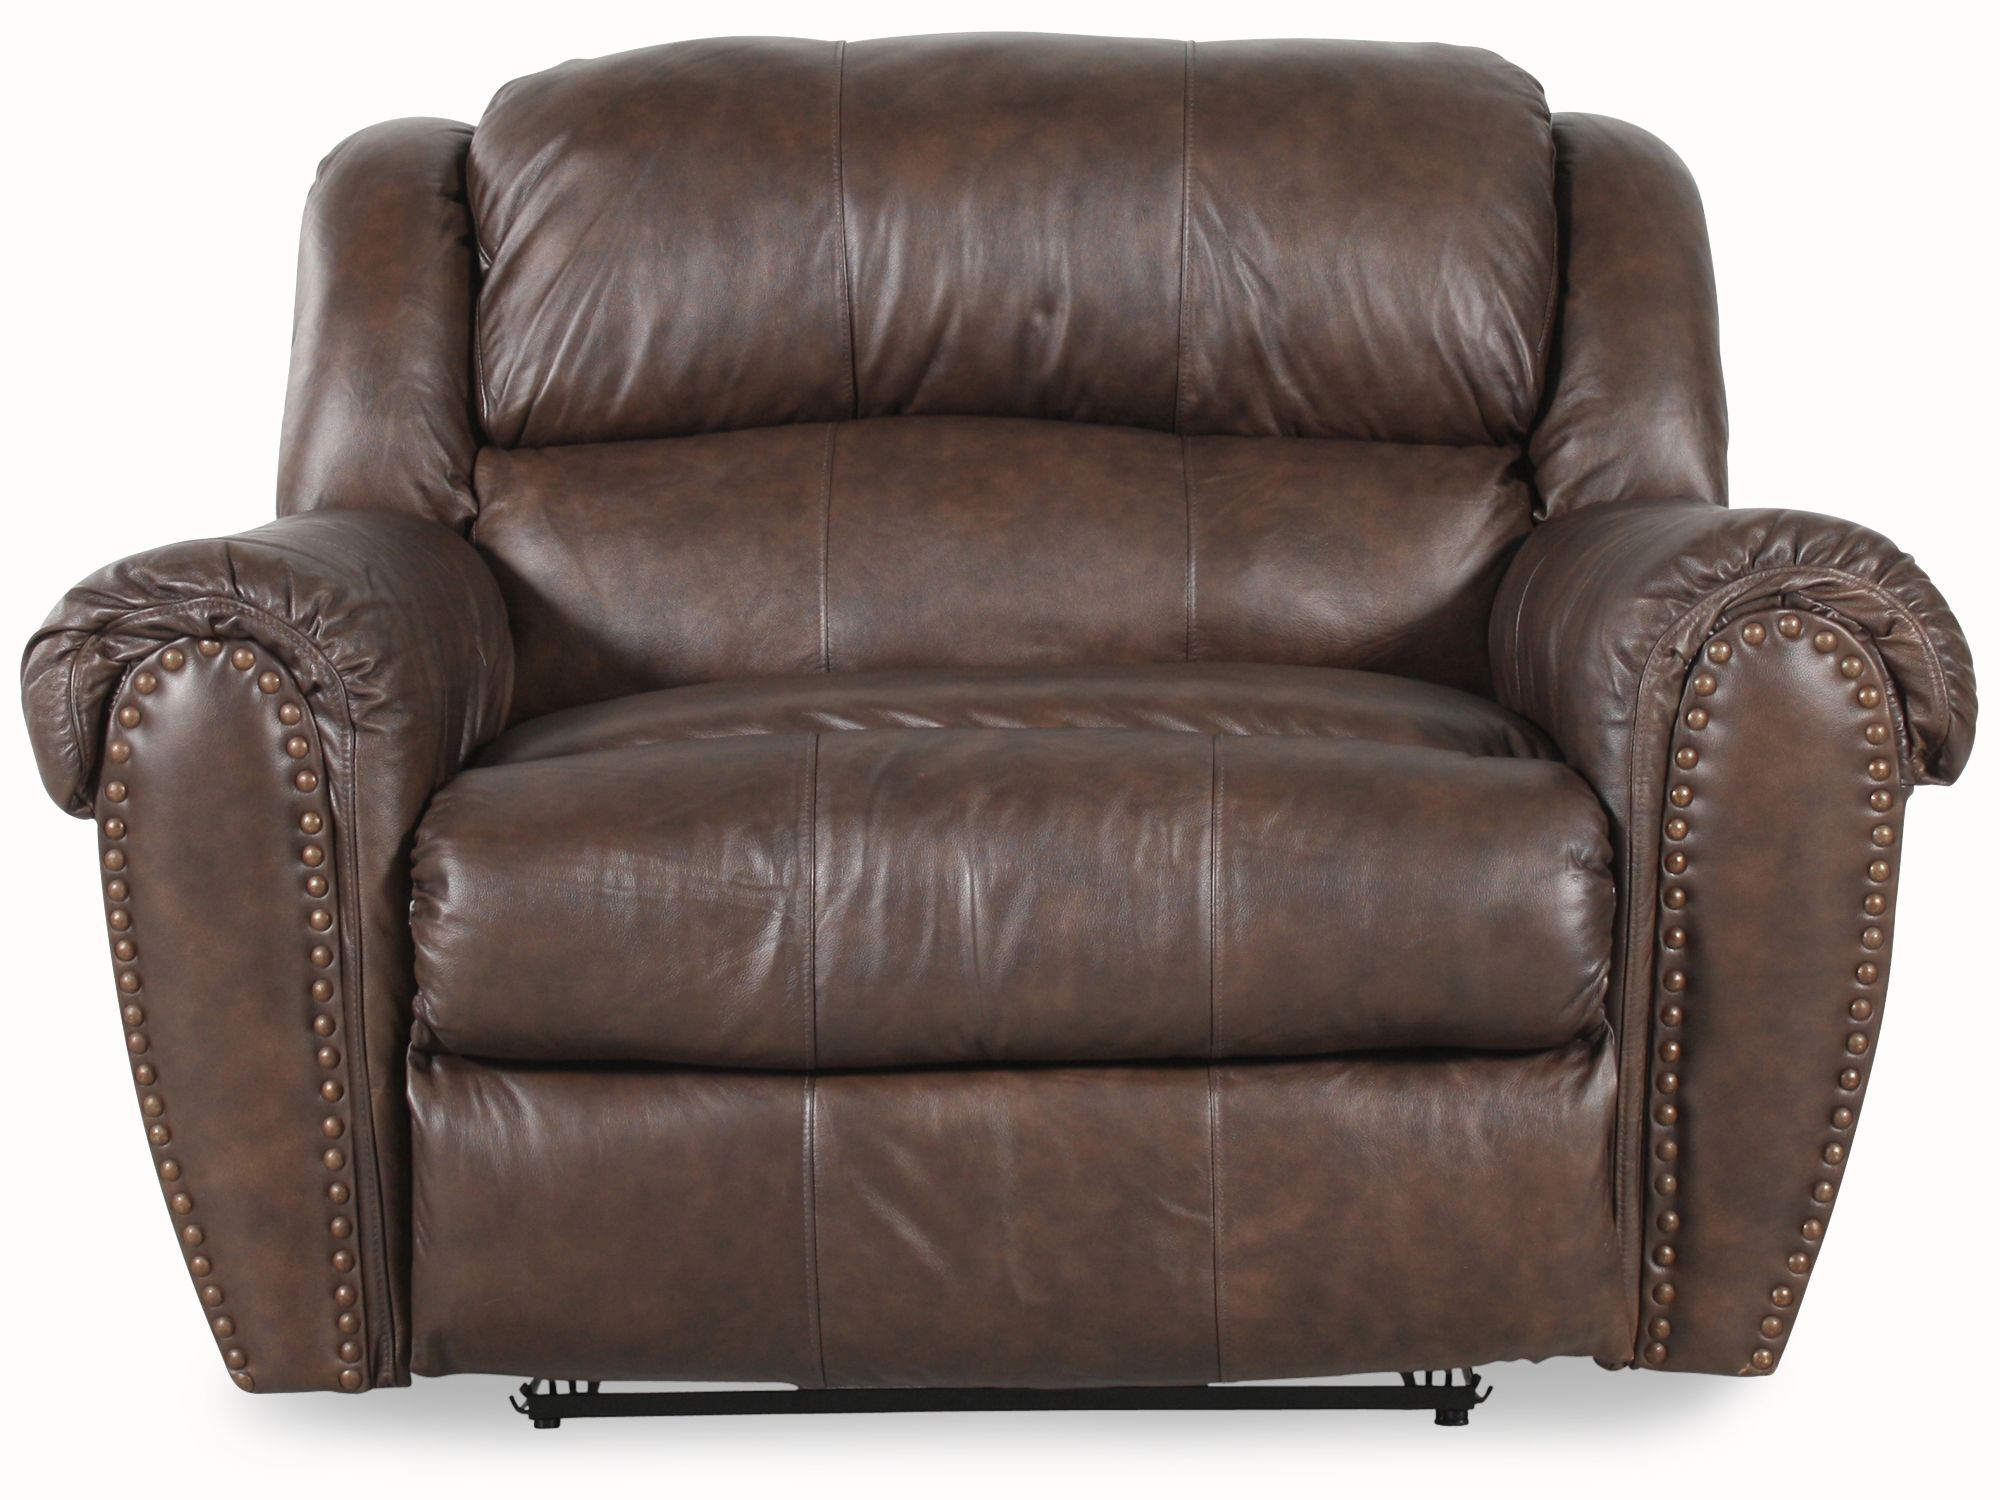 Nailhead Accented Leather Snuggler Recliner in Brown